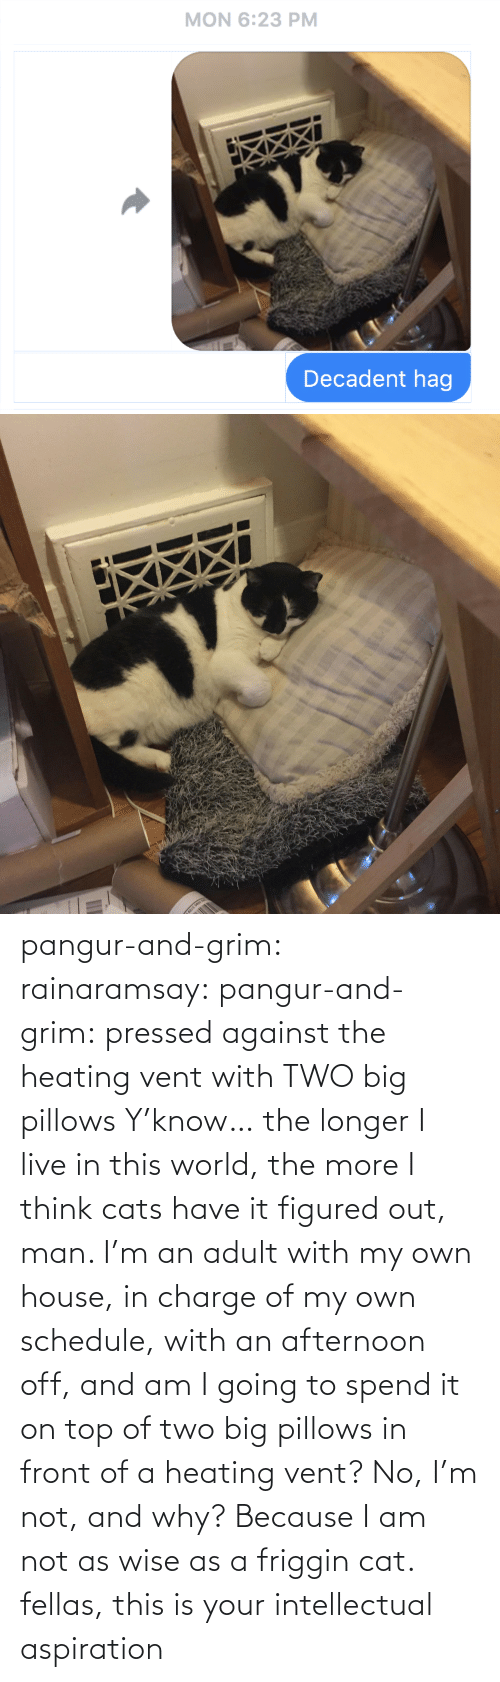 House: pangur-and-grim: rainaramsay:  pangur-and-grim: pressed against the heating vent with TWO big pillows Y'know… the longer I live in this world, the more I think cats have it figured out, man. I'm an adult with my own house, in charge of my own schedule, with an afternoon off, and am I going to spend it on top of two big pillows in front of a heating vent? No, I'm not, and why? Because I am not as wise as a friggin cat.  fellas, this is your intellectual aspiration